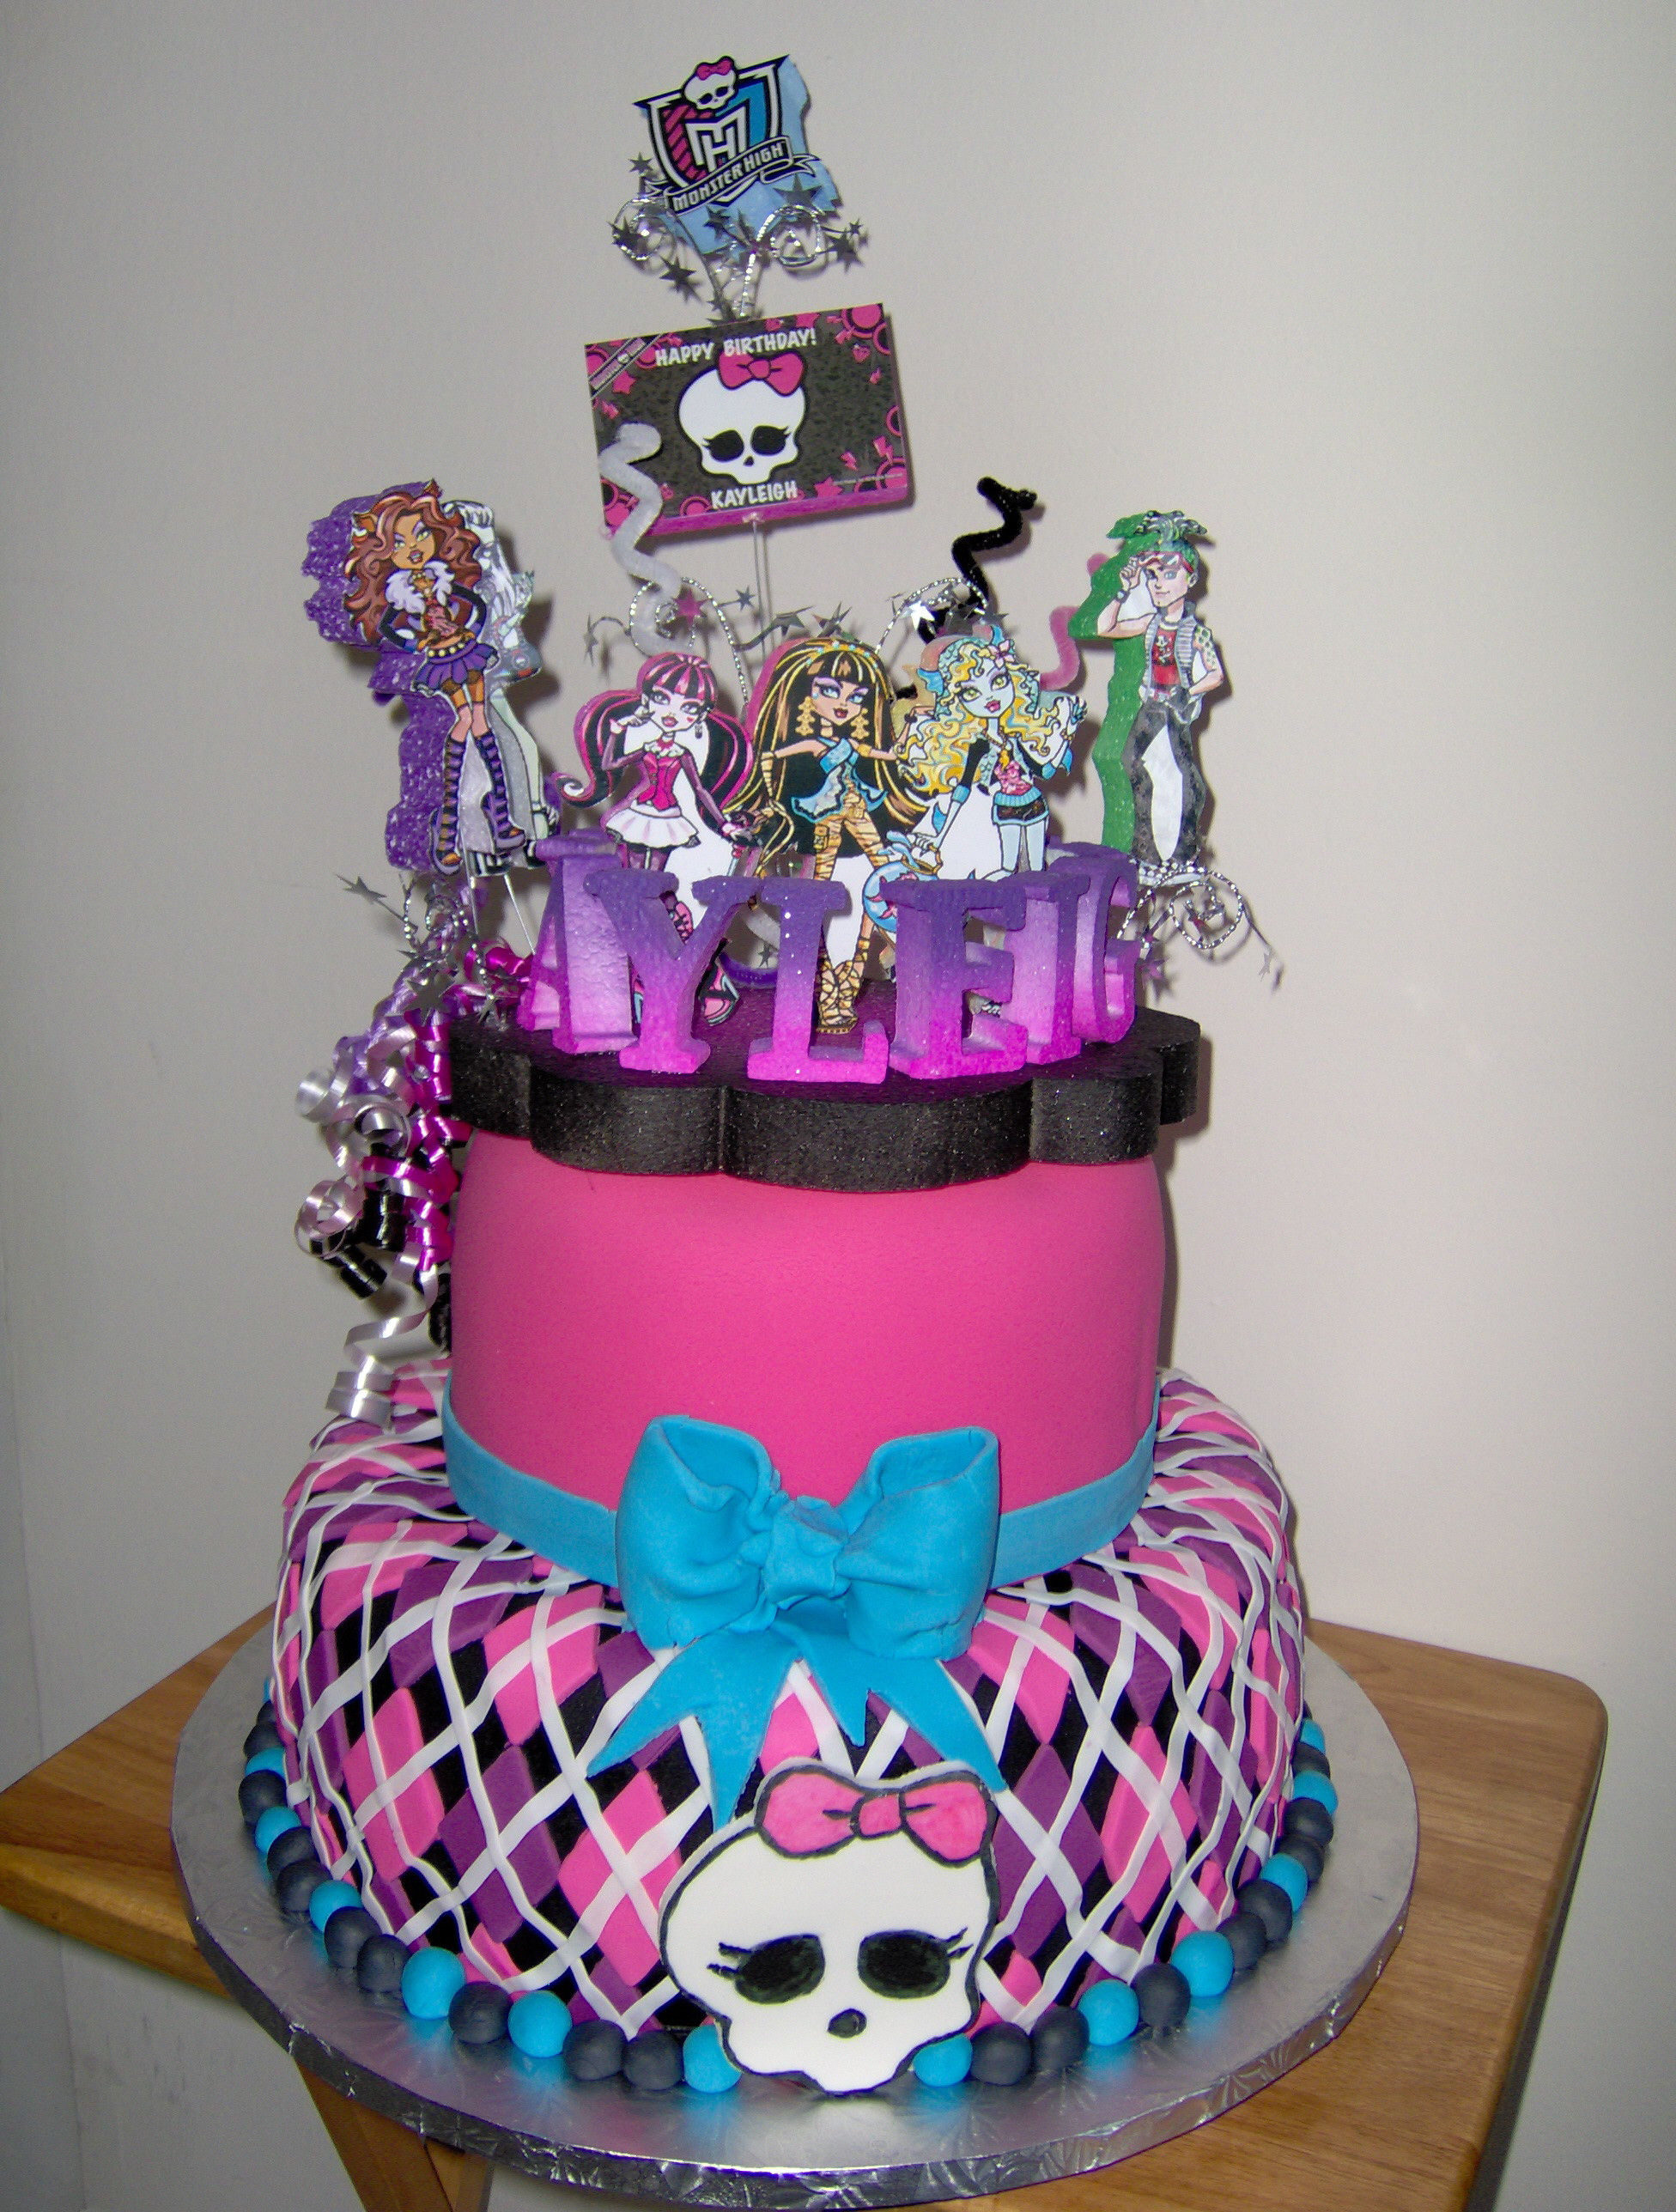 Best ideas about Birthday Cake Designs For Him . Save or Pin 25 Monster High Cake Ideas and Designs EchoMon Now.